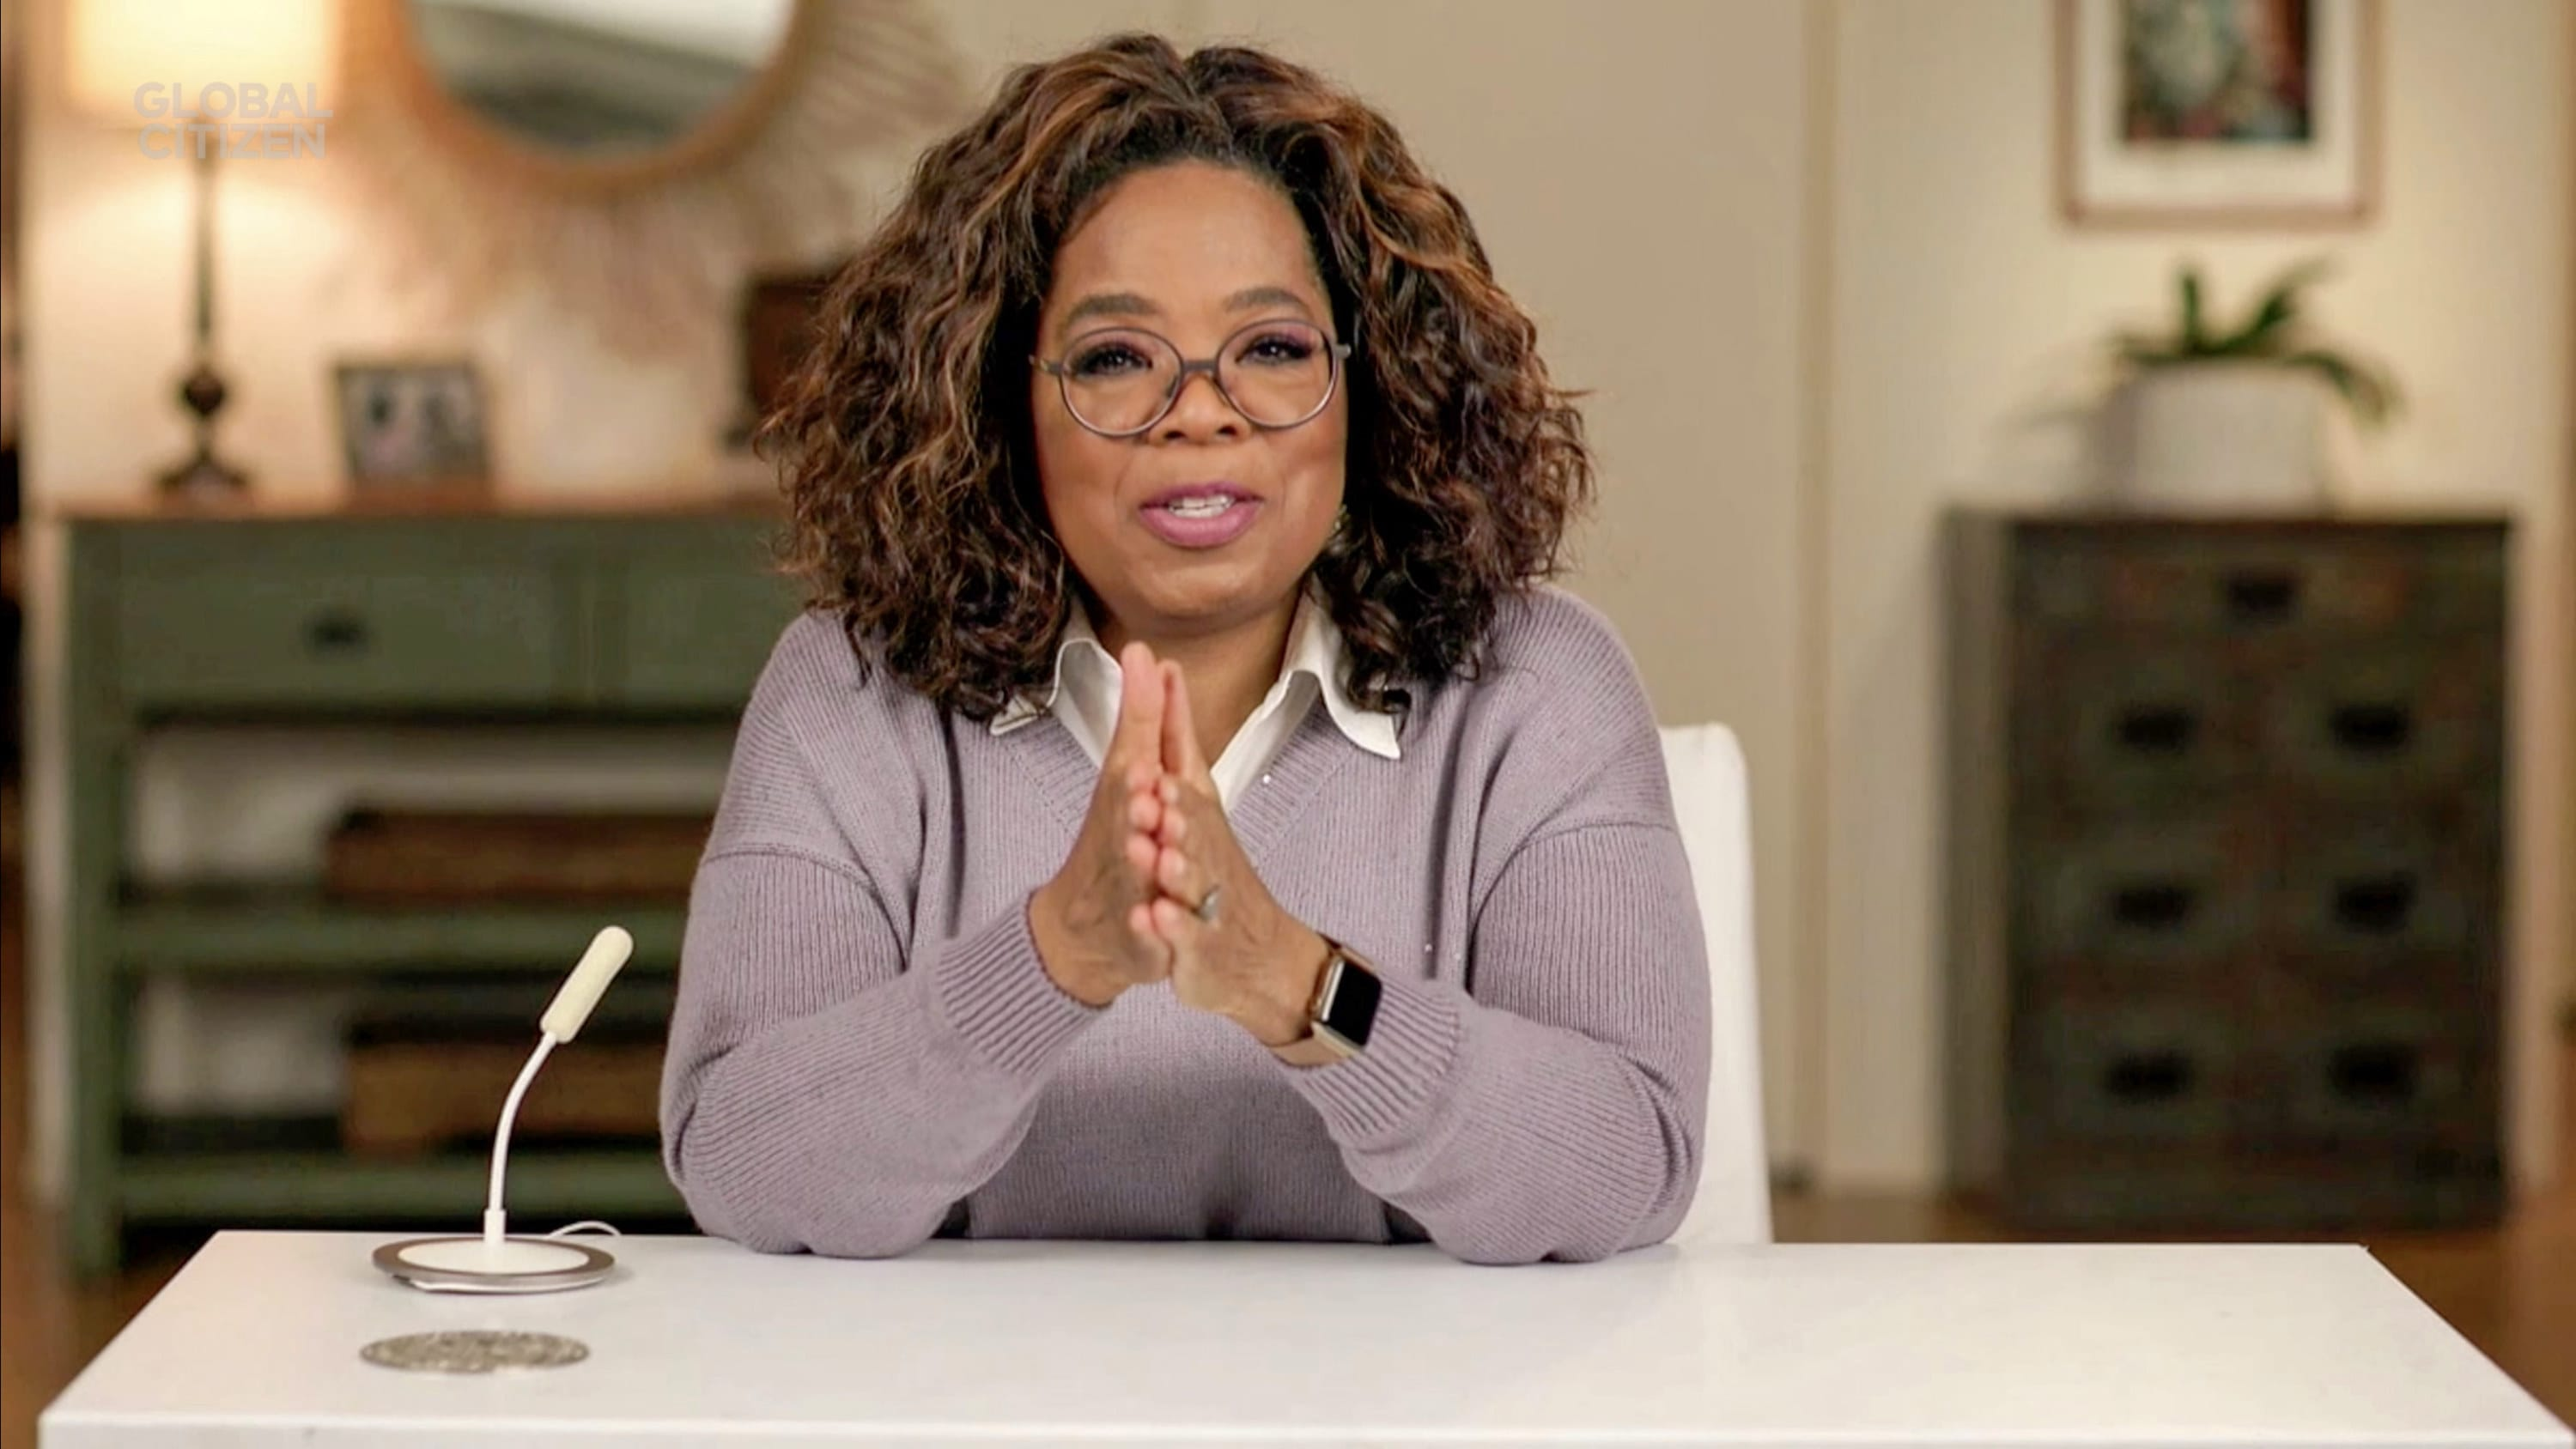 Oprah sits at a desk with her hands folded and her elbows on the desk